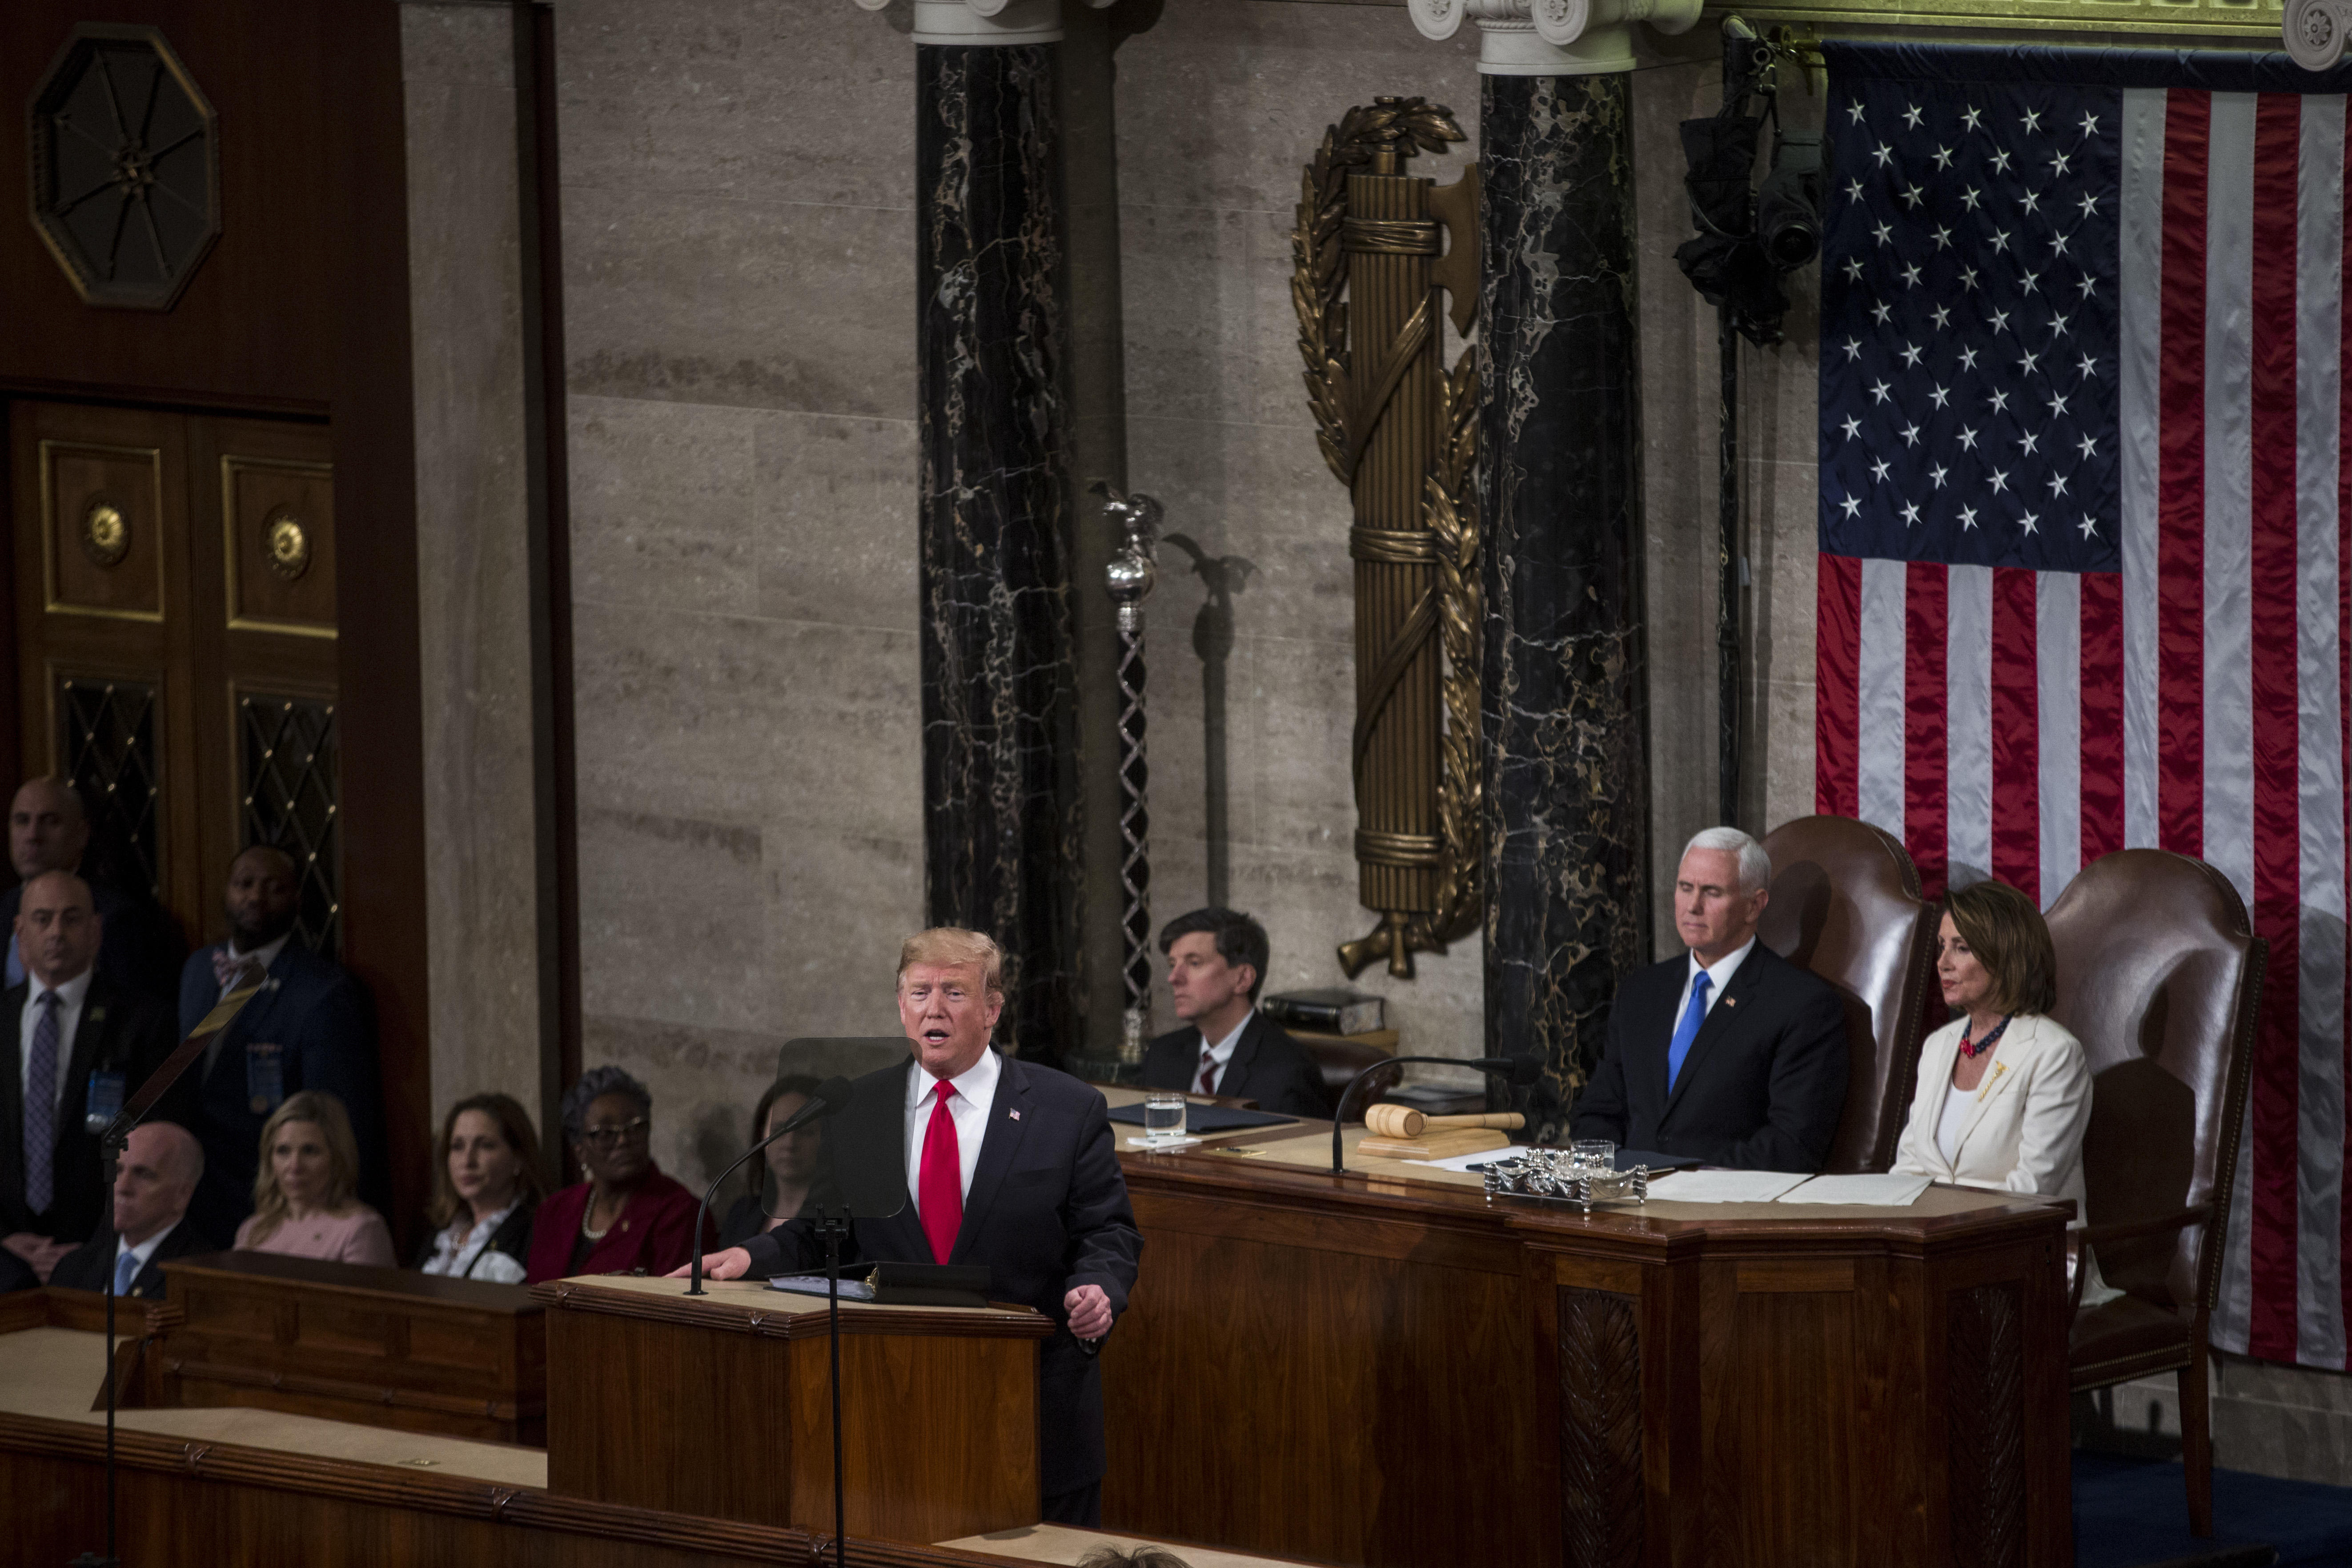 President Donald Trump delivers the State of the Union address in the chamber of the U.S. House of Representatives at the U.S. Capitol Building on February 5, 2019.